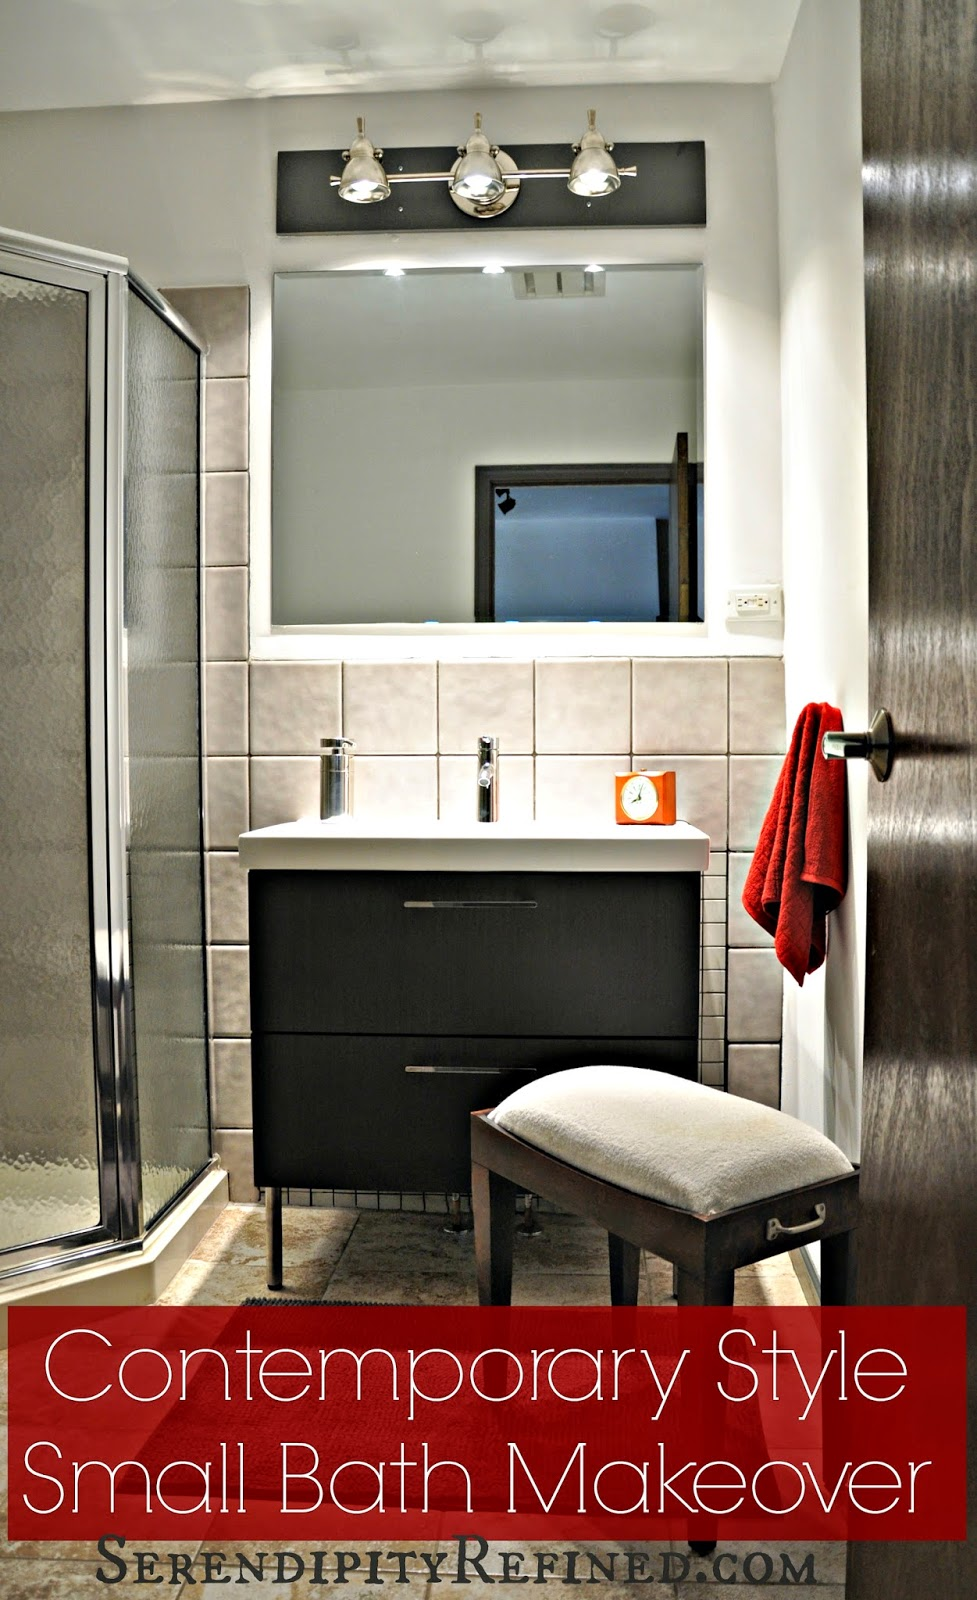 Modern Apartment Bathroom serendipity refined blog: contemporary apartment small bath makeover